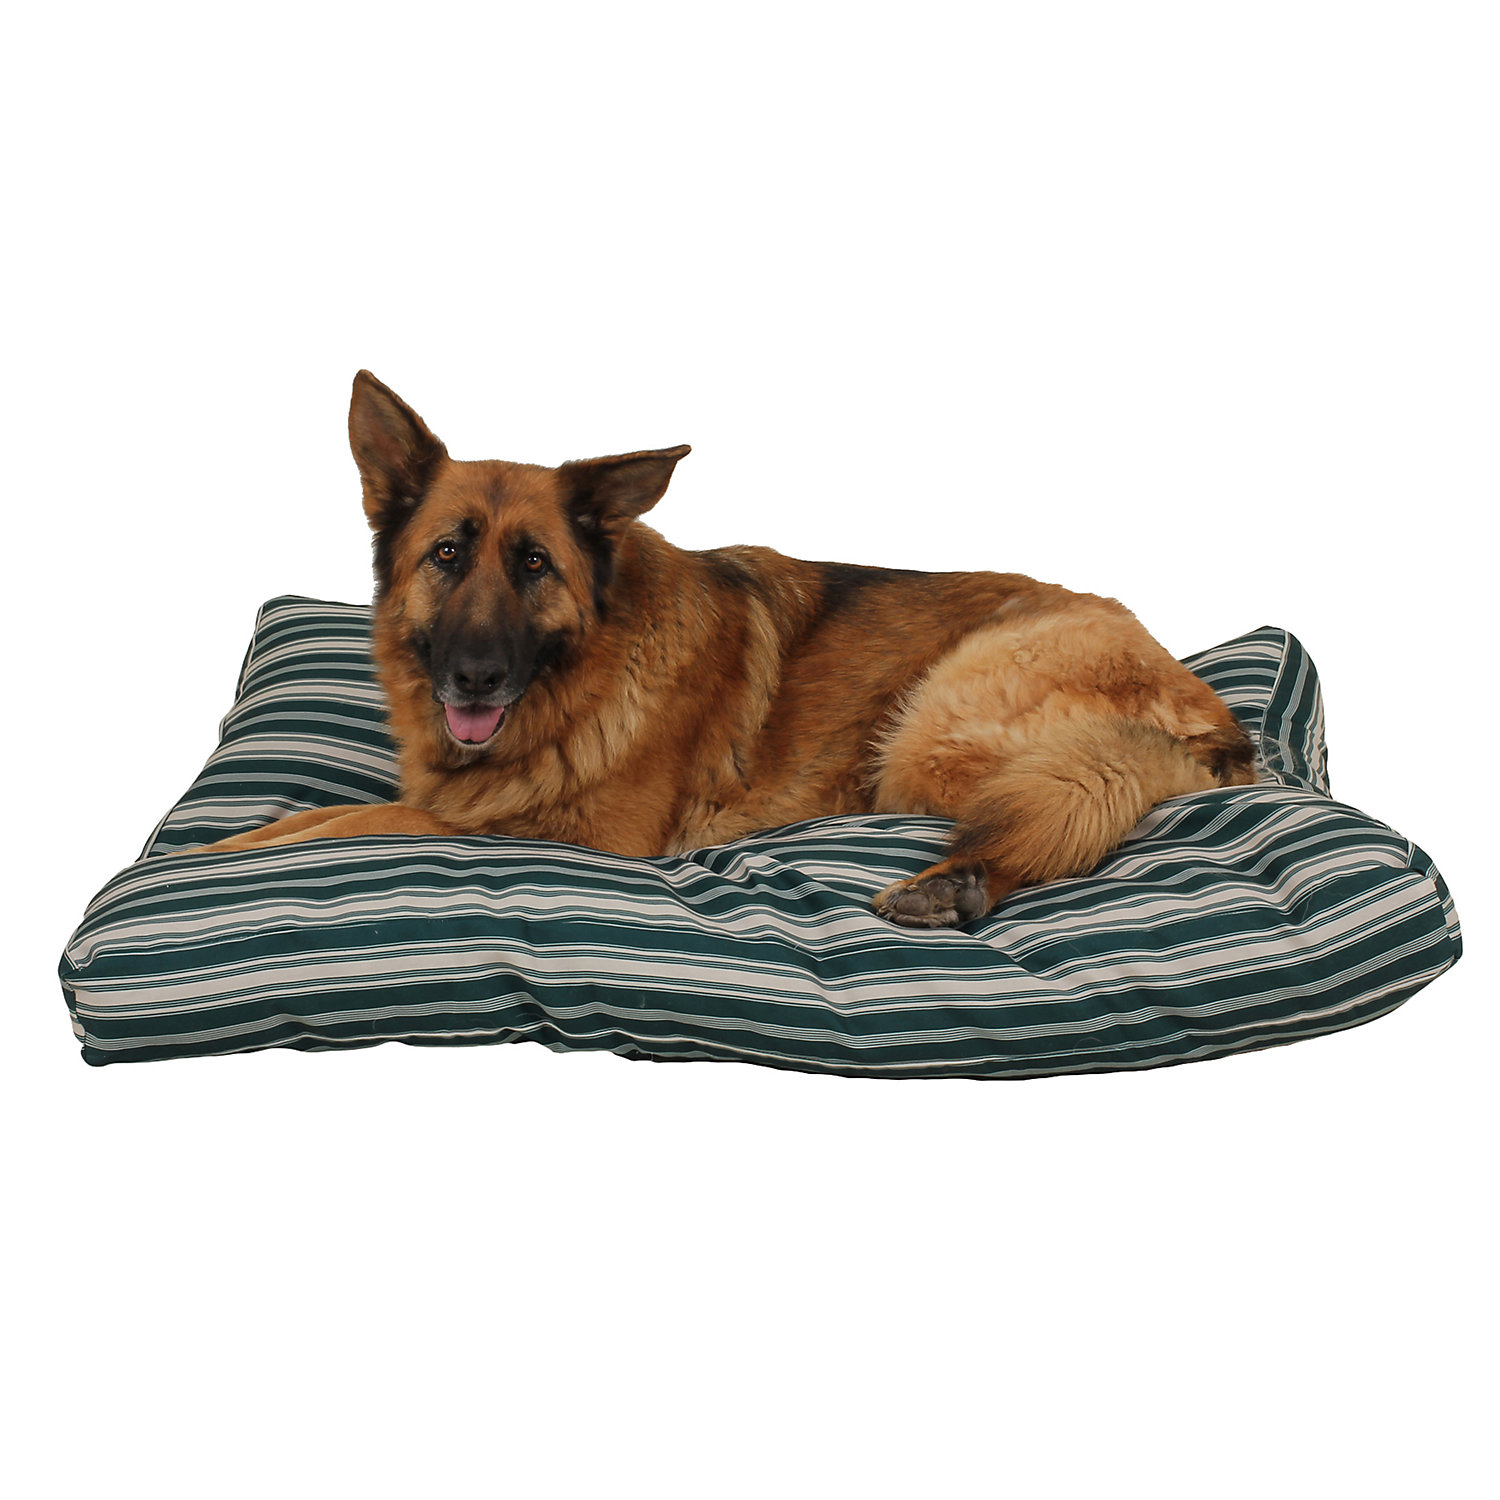 Carolina Pet Company Indoor Outdoor Jamison Green Striped Dog Bed 54 L X 44 W X 4 H Large